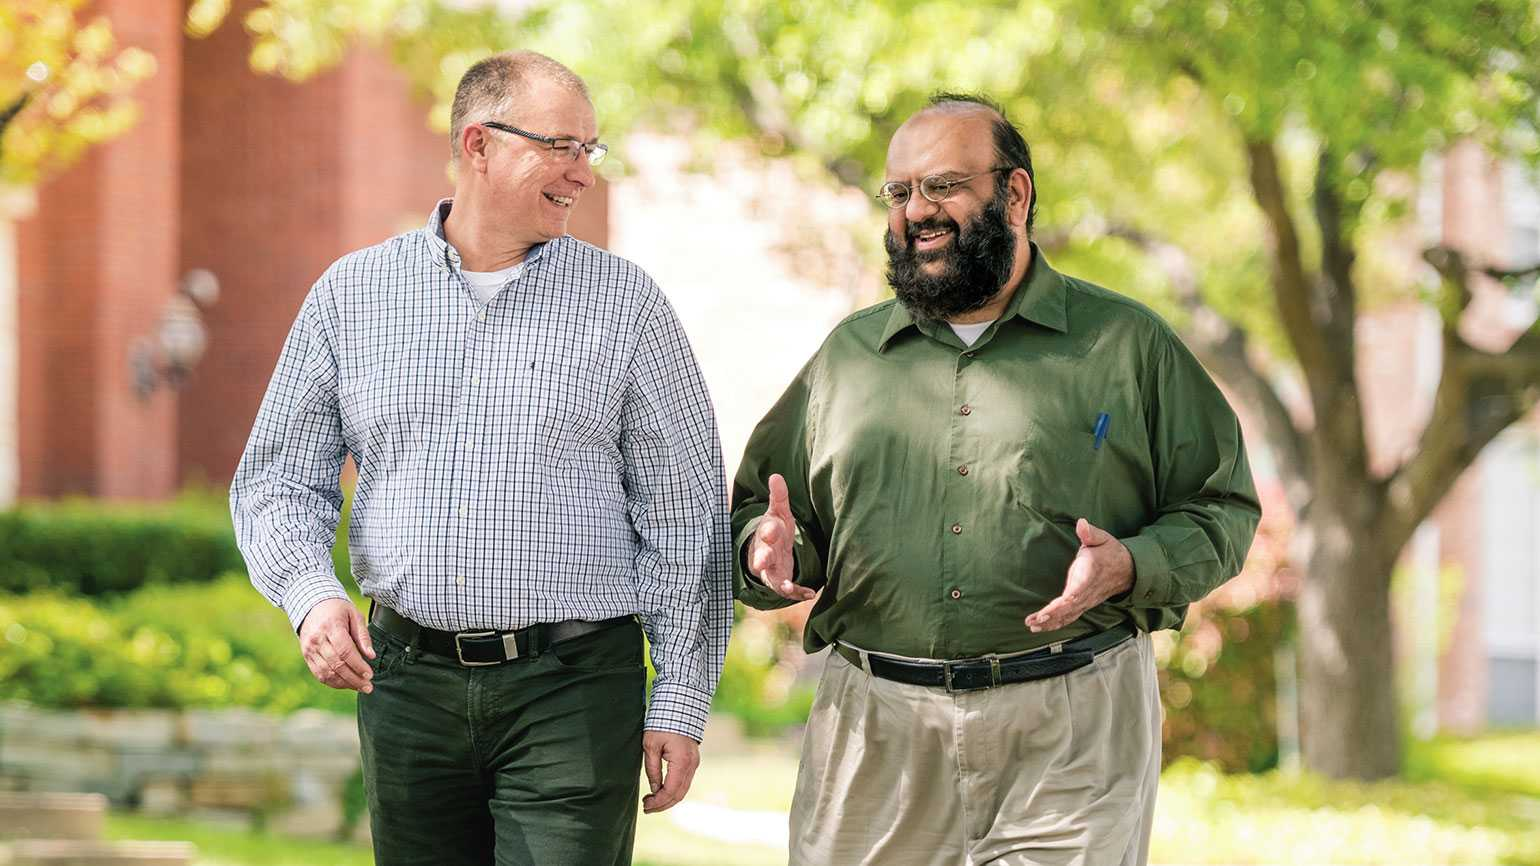 Pastor Jim Powell (left) and Imam Kamil Mufti